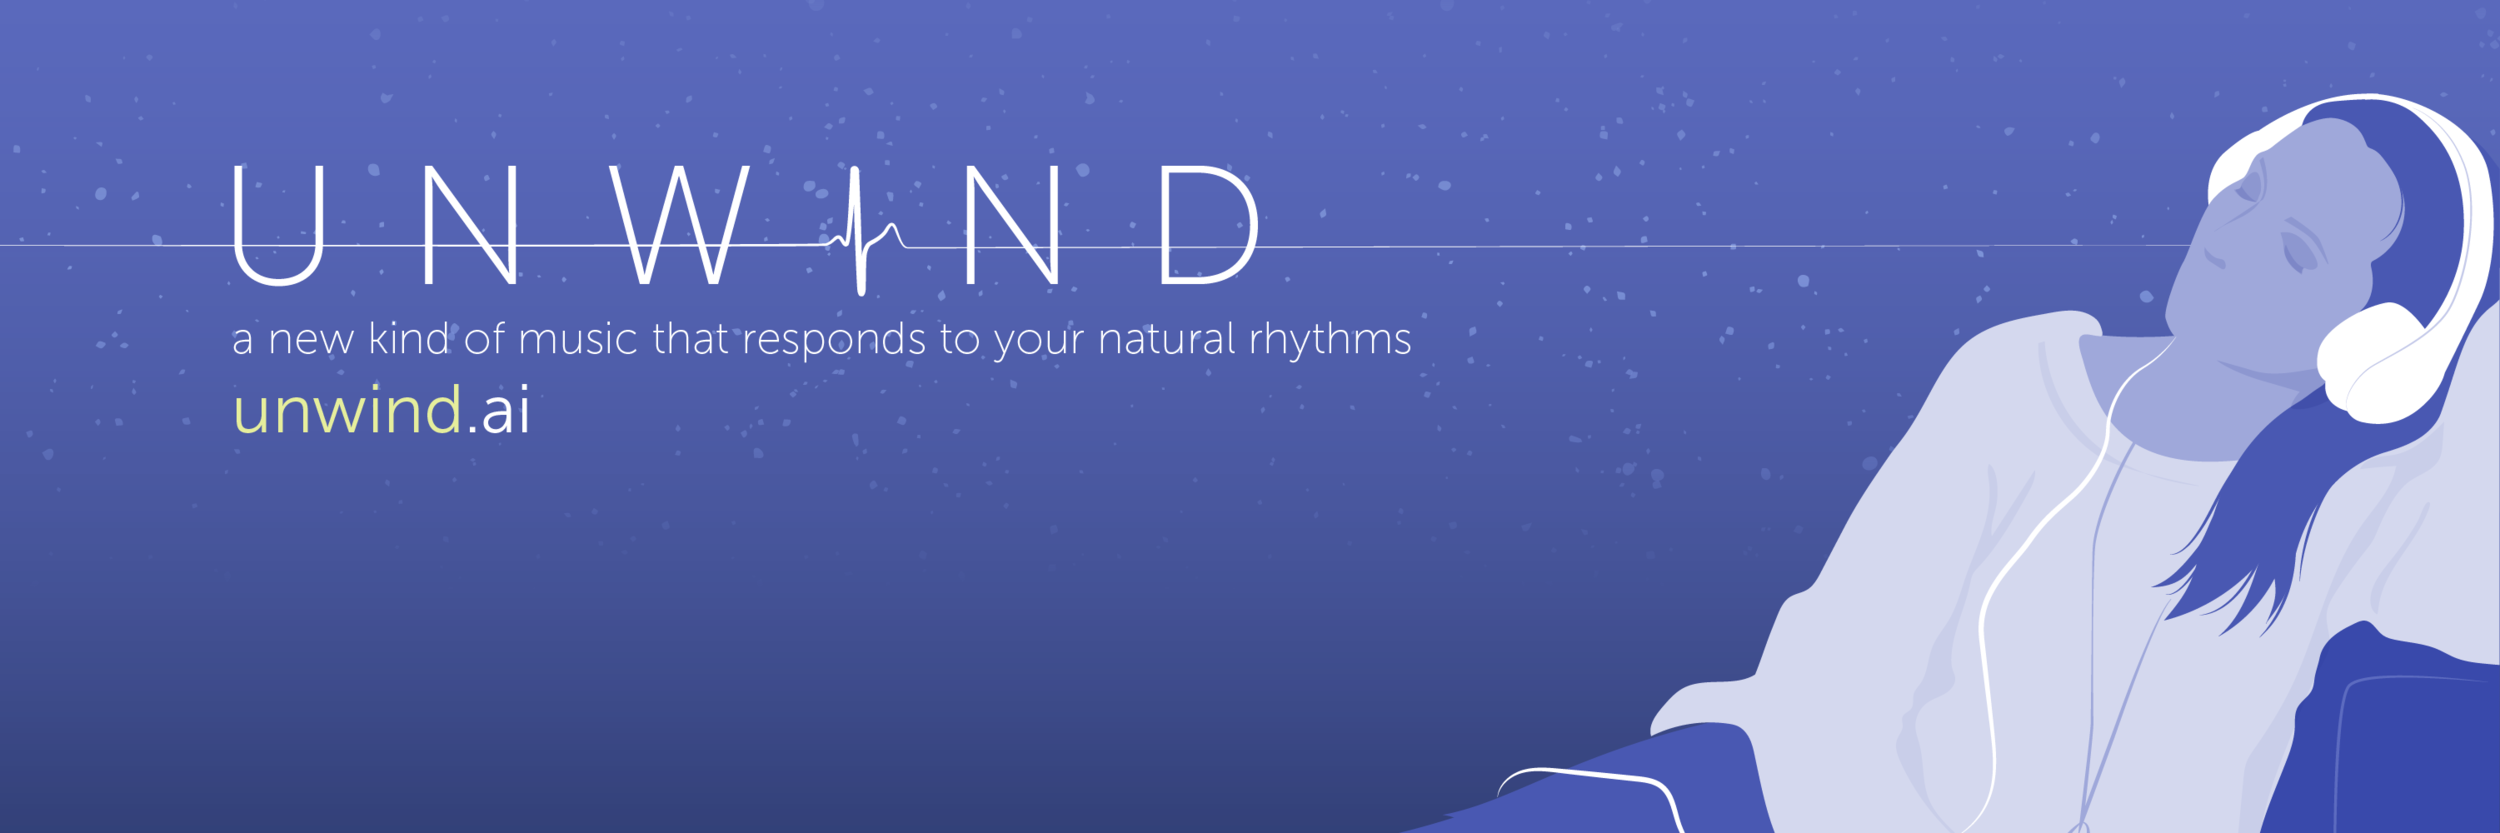 unwind.ai - personalized music designed to help you relax before sleep - Free - Sync Project